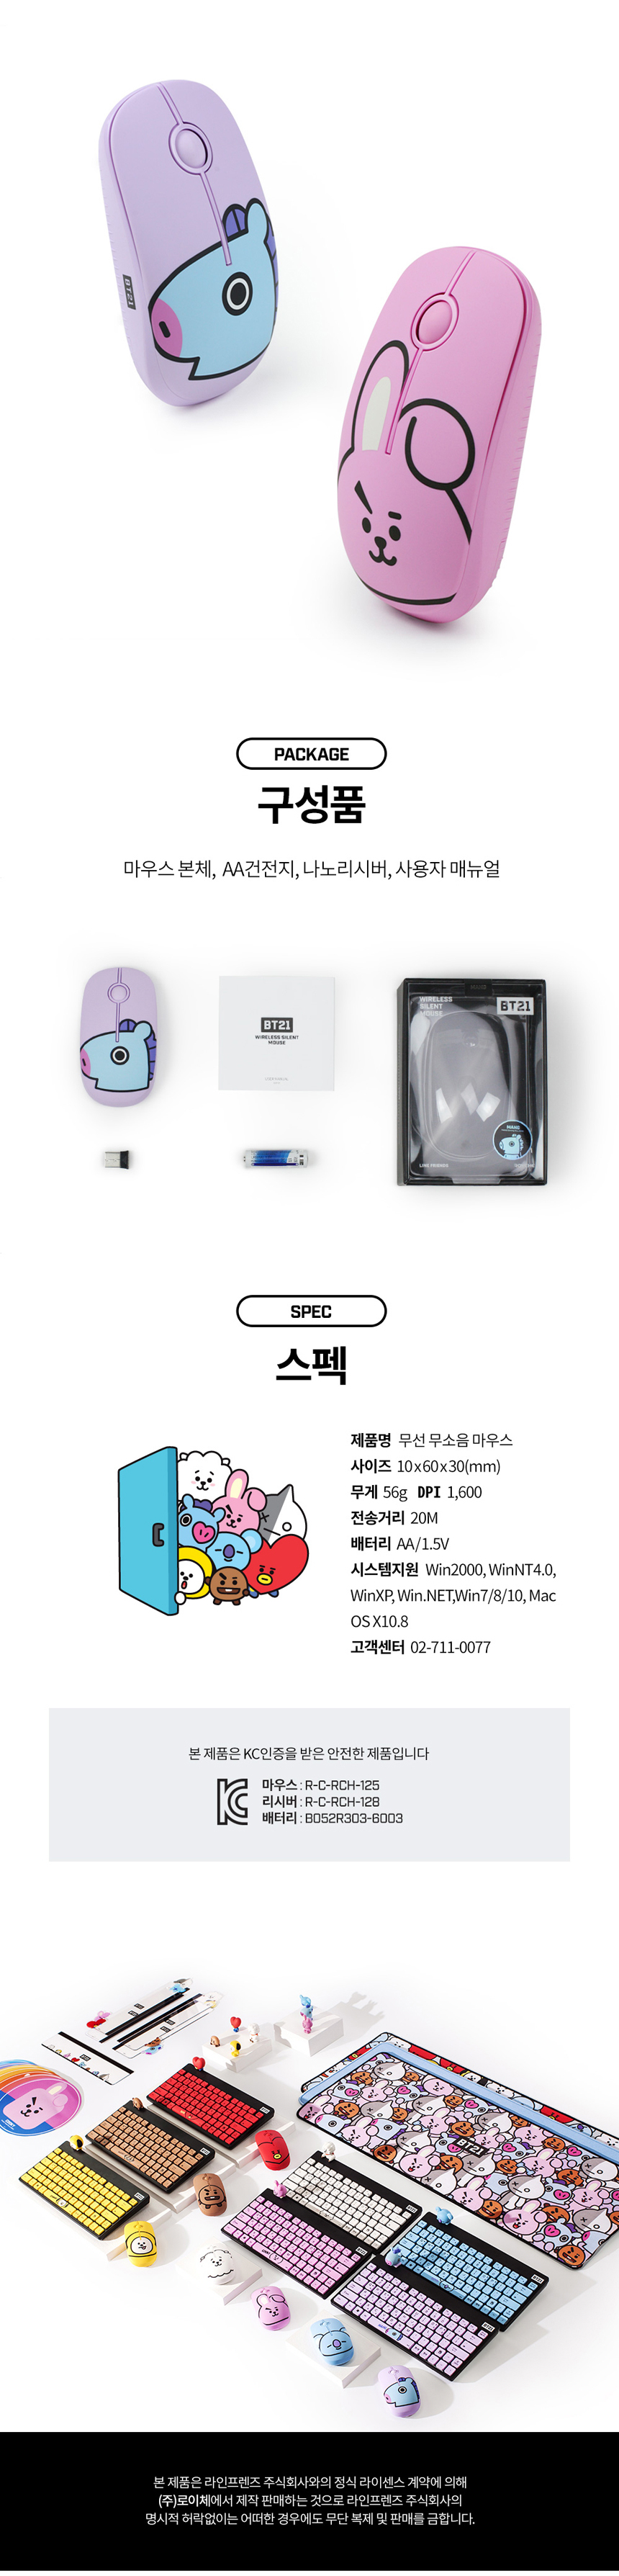 bt21_gm_mouse_05.jpg